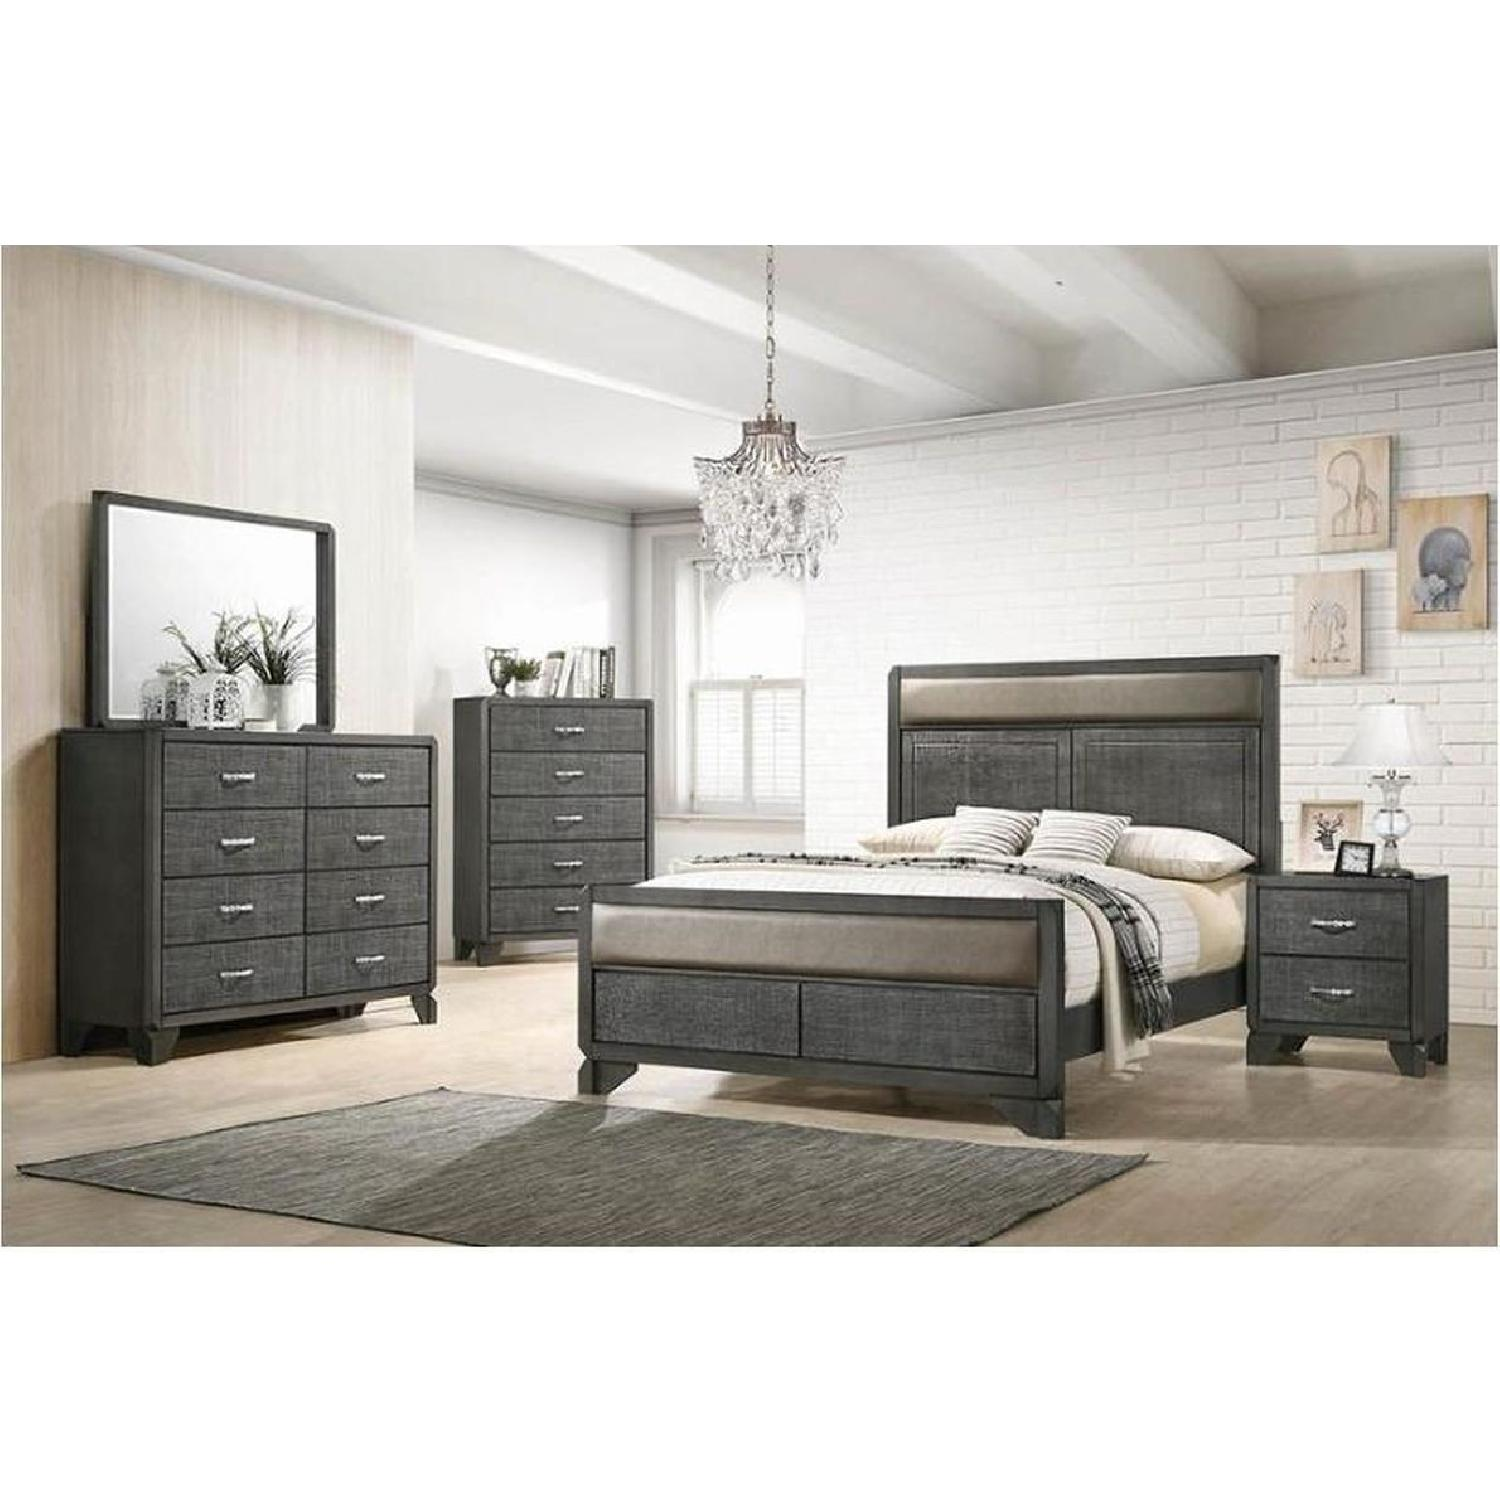 5-Drawer Chest in Caviar Finish w/ Woven Texture Front - image-5